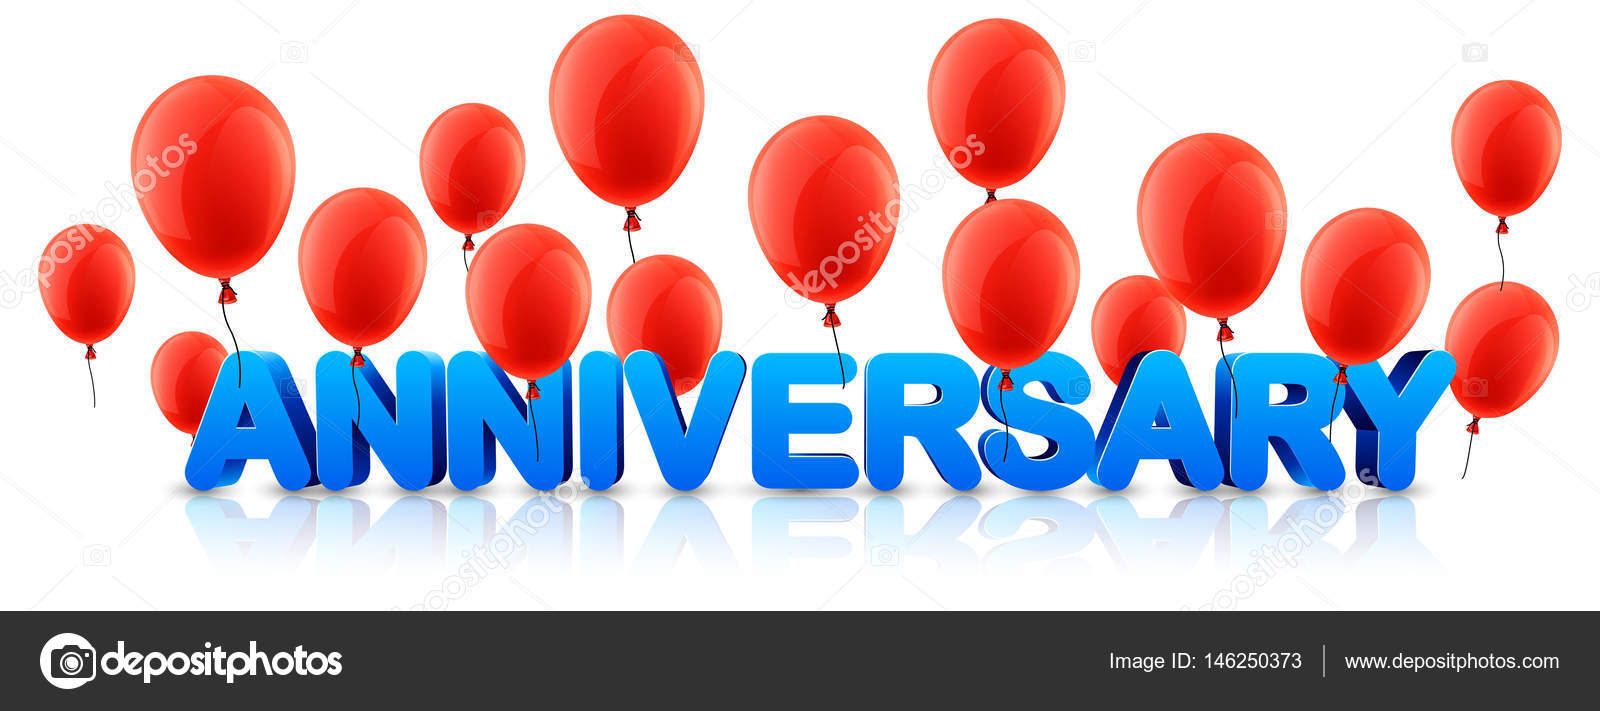 anniversary banner with red balloons stock vector maxborovkov